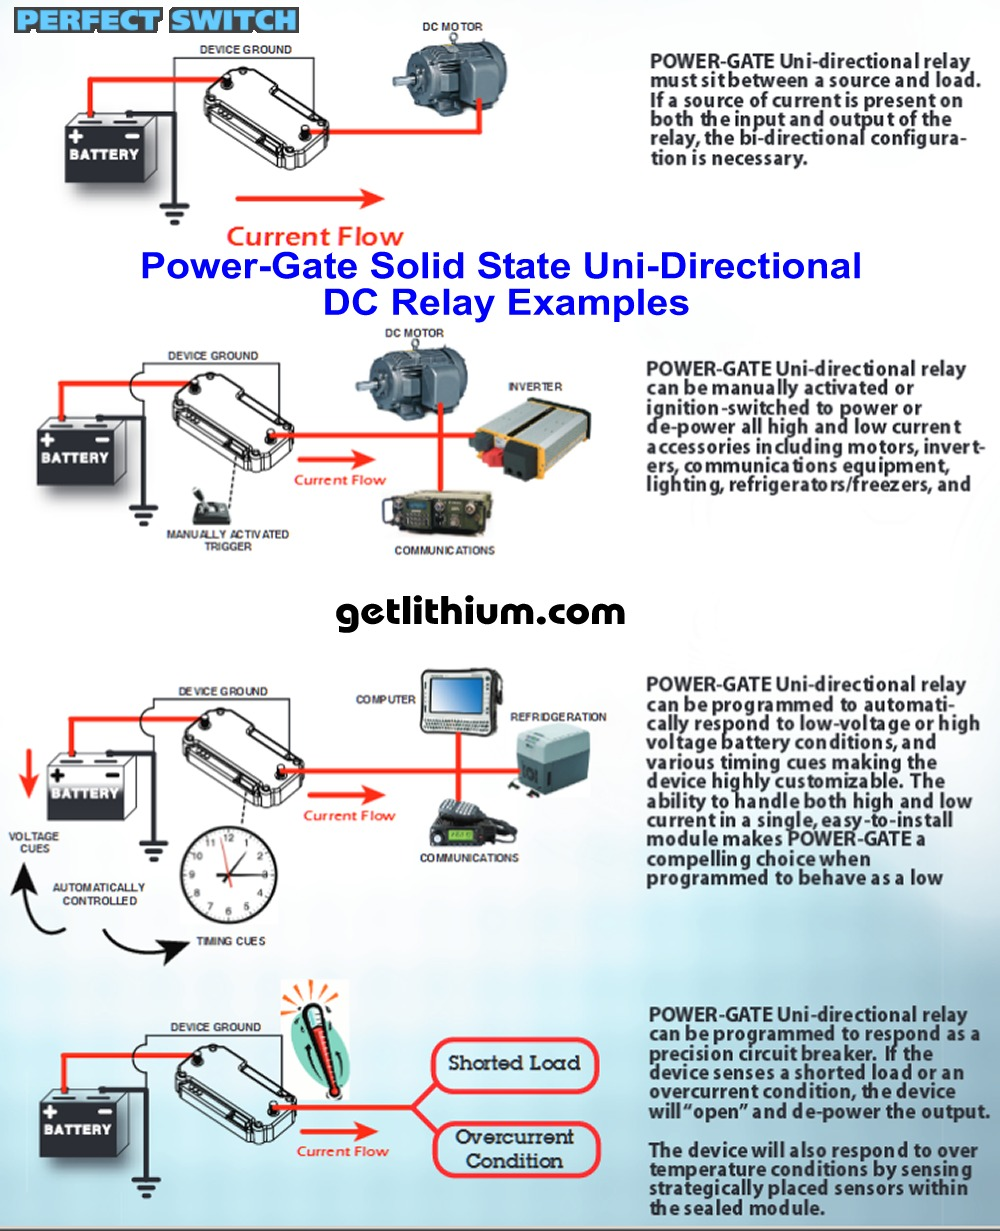 medium resolution of power gate uni directional dc relay applications